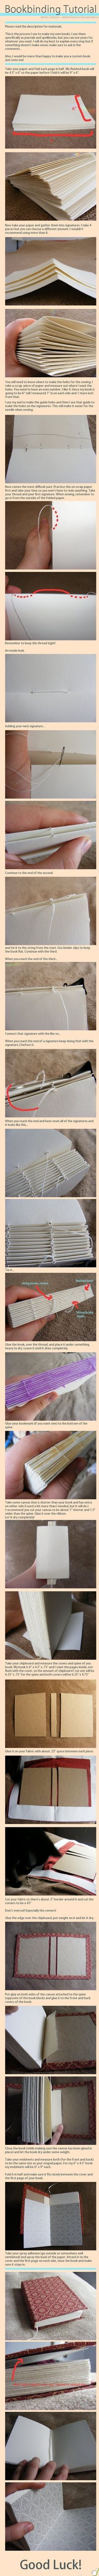 How to: book-bind